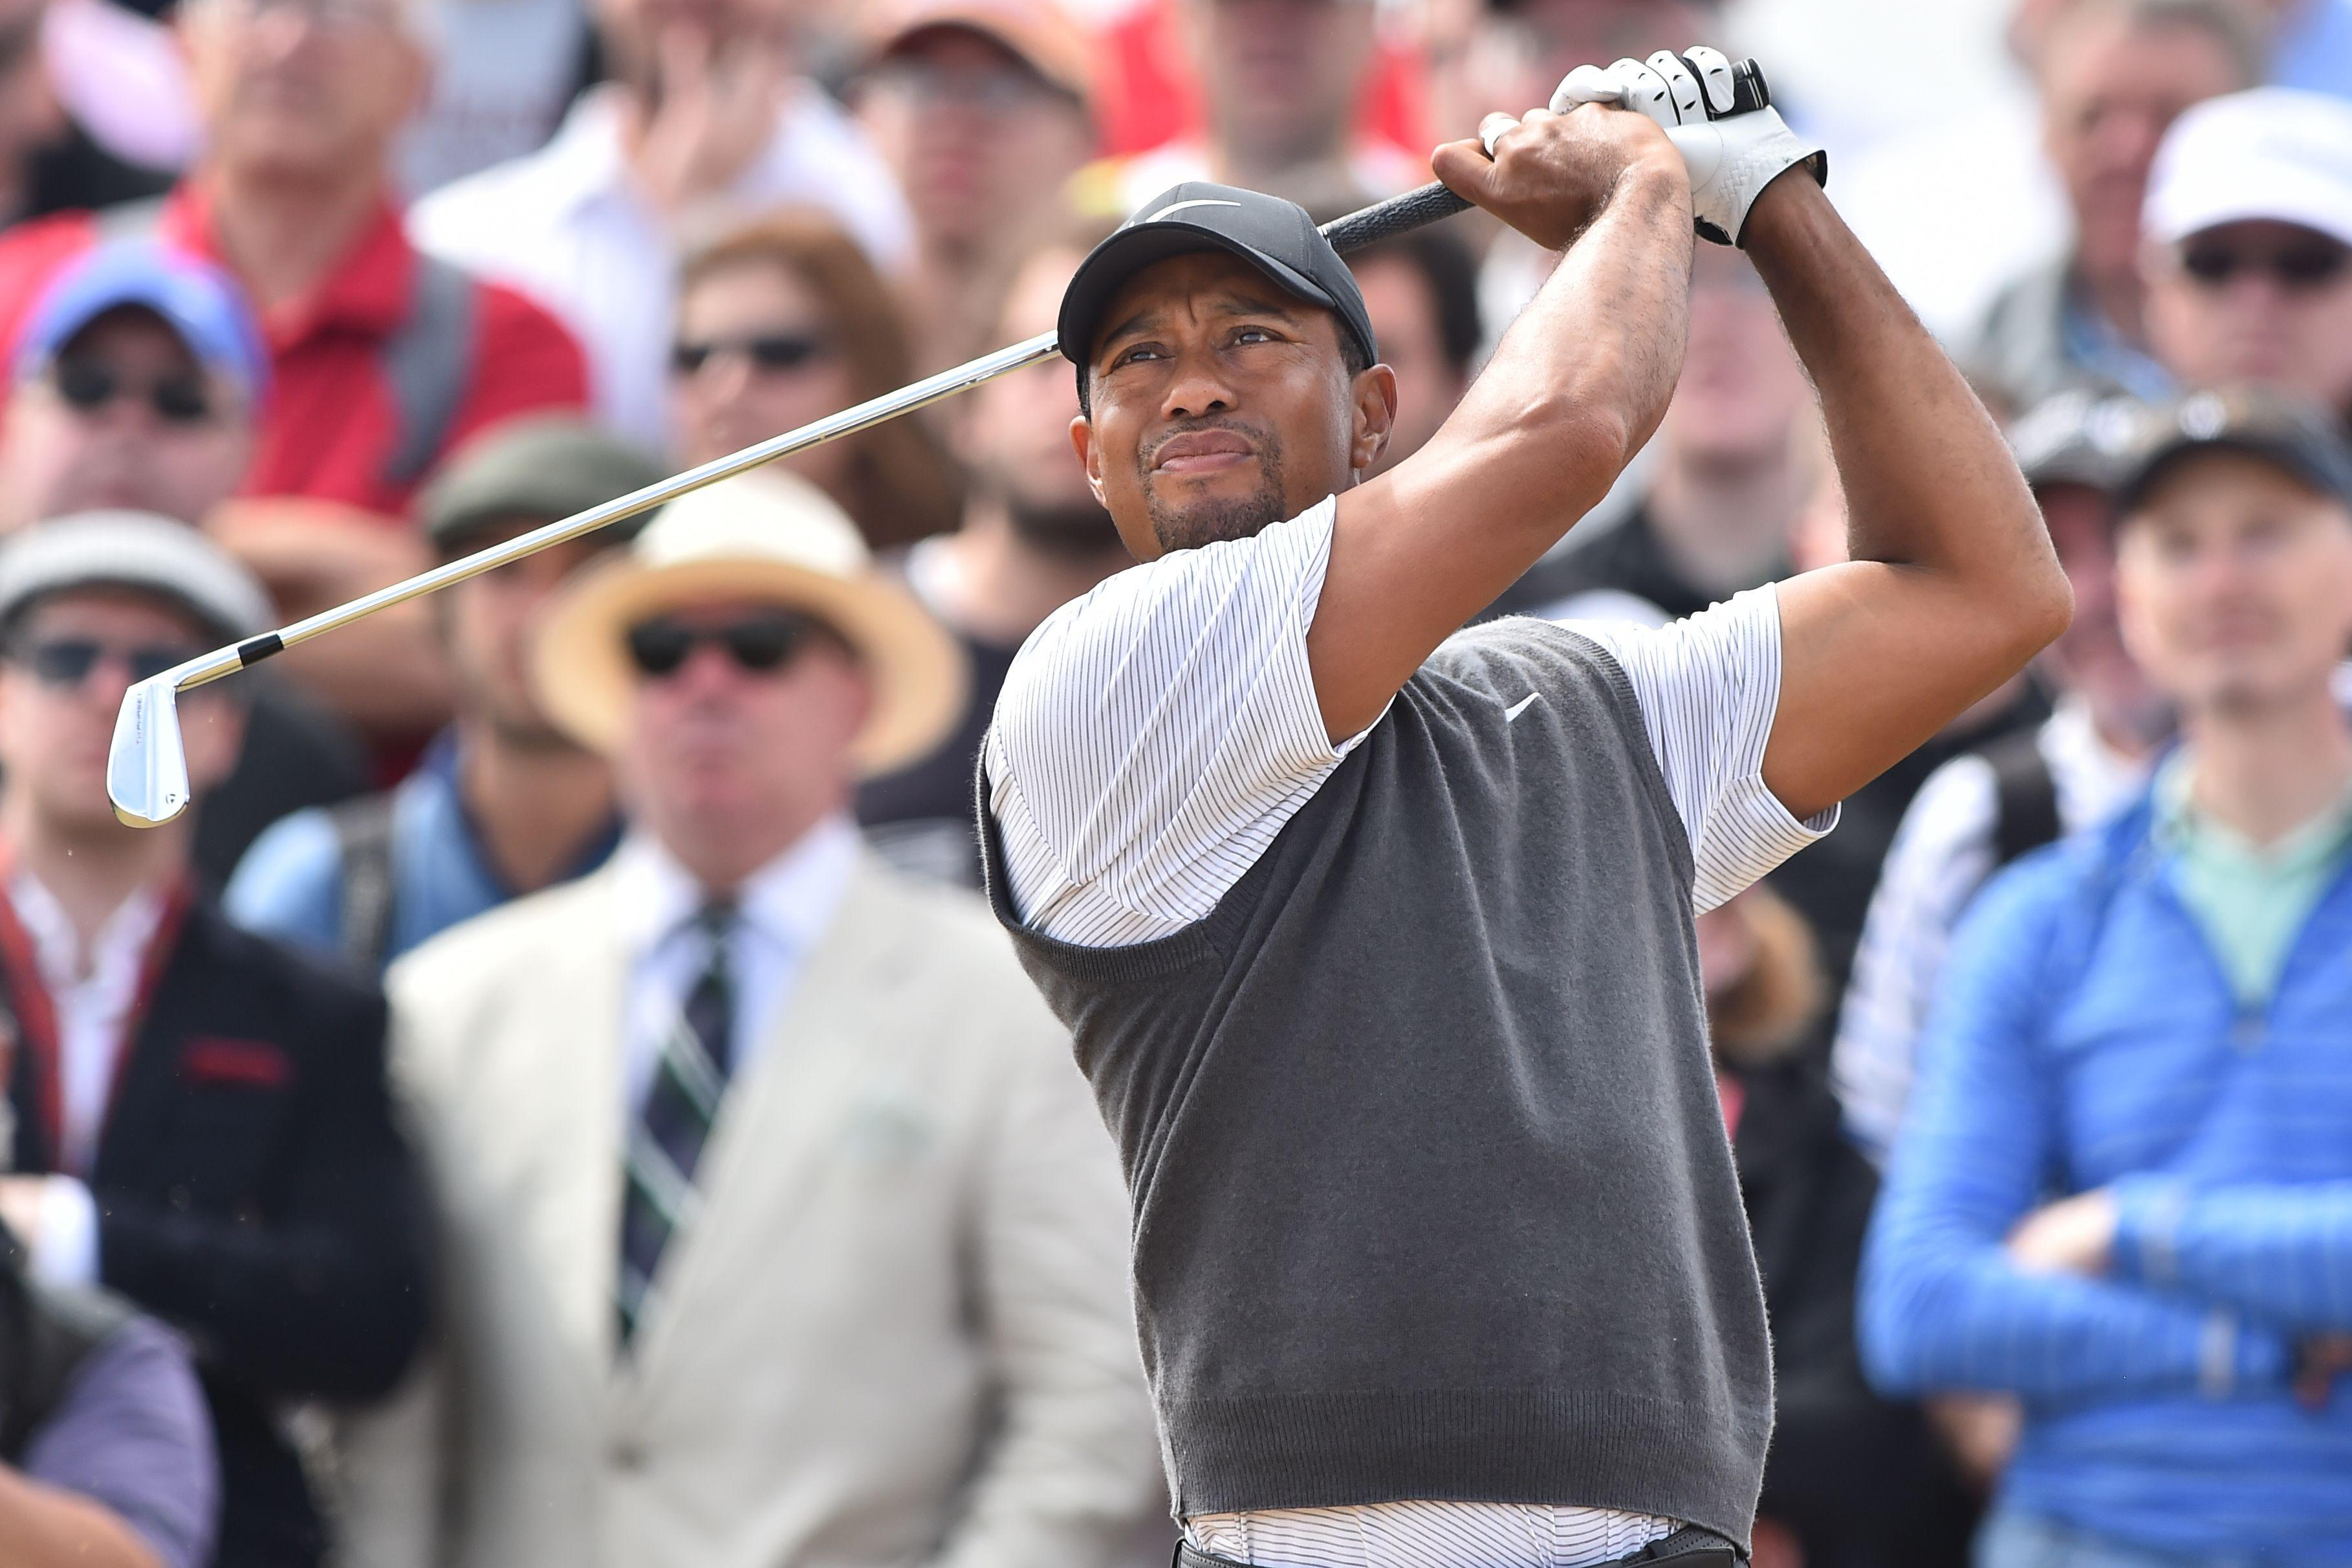 The 14-time Major champion charged up the leaderboard at the Open